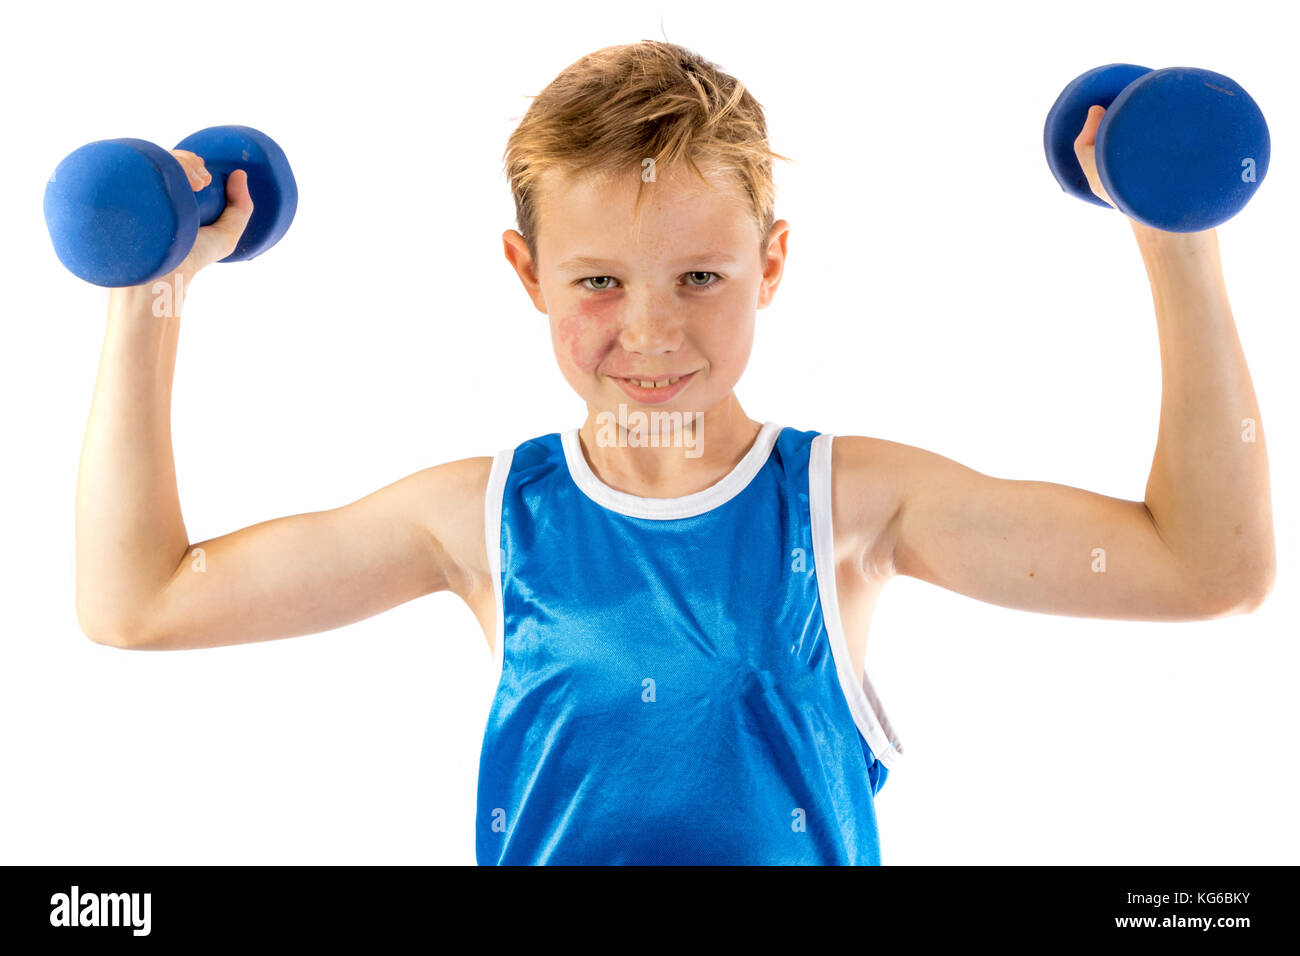 Pre-teen boy lifting weights isolated on a white background - Stock Image